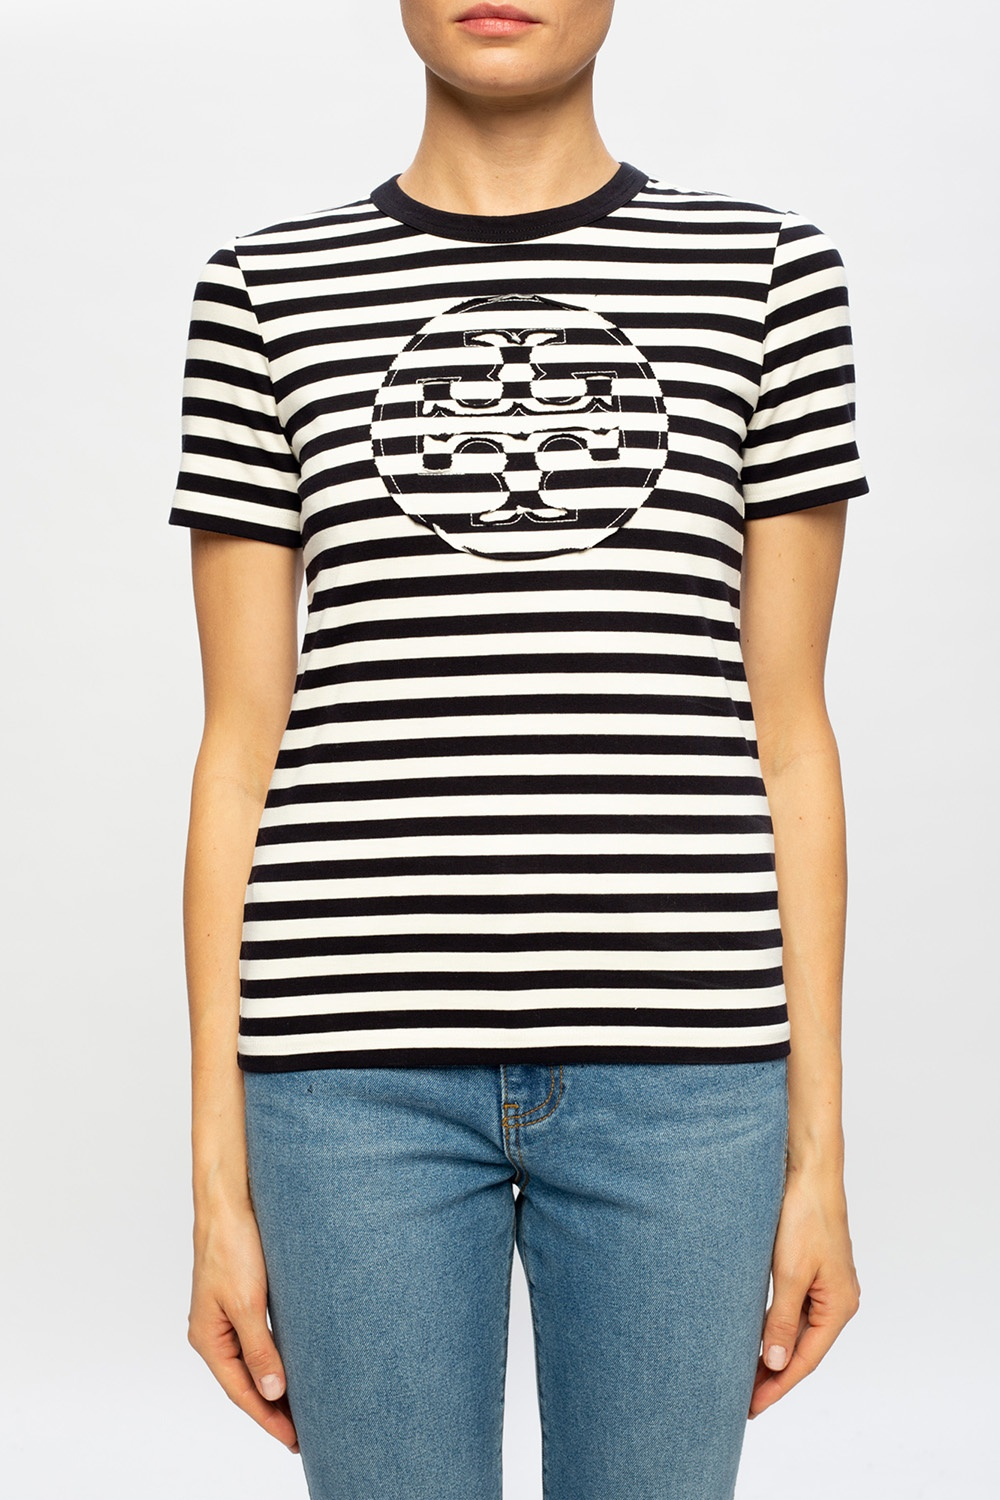 Tory Burch T-shirt with logo